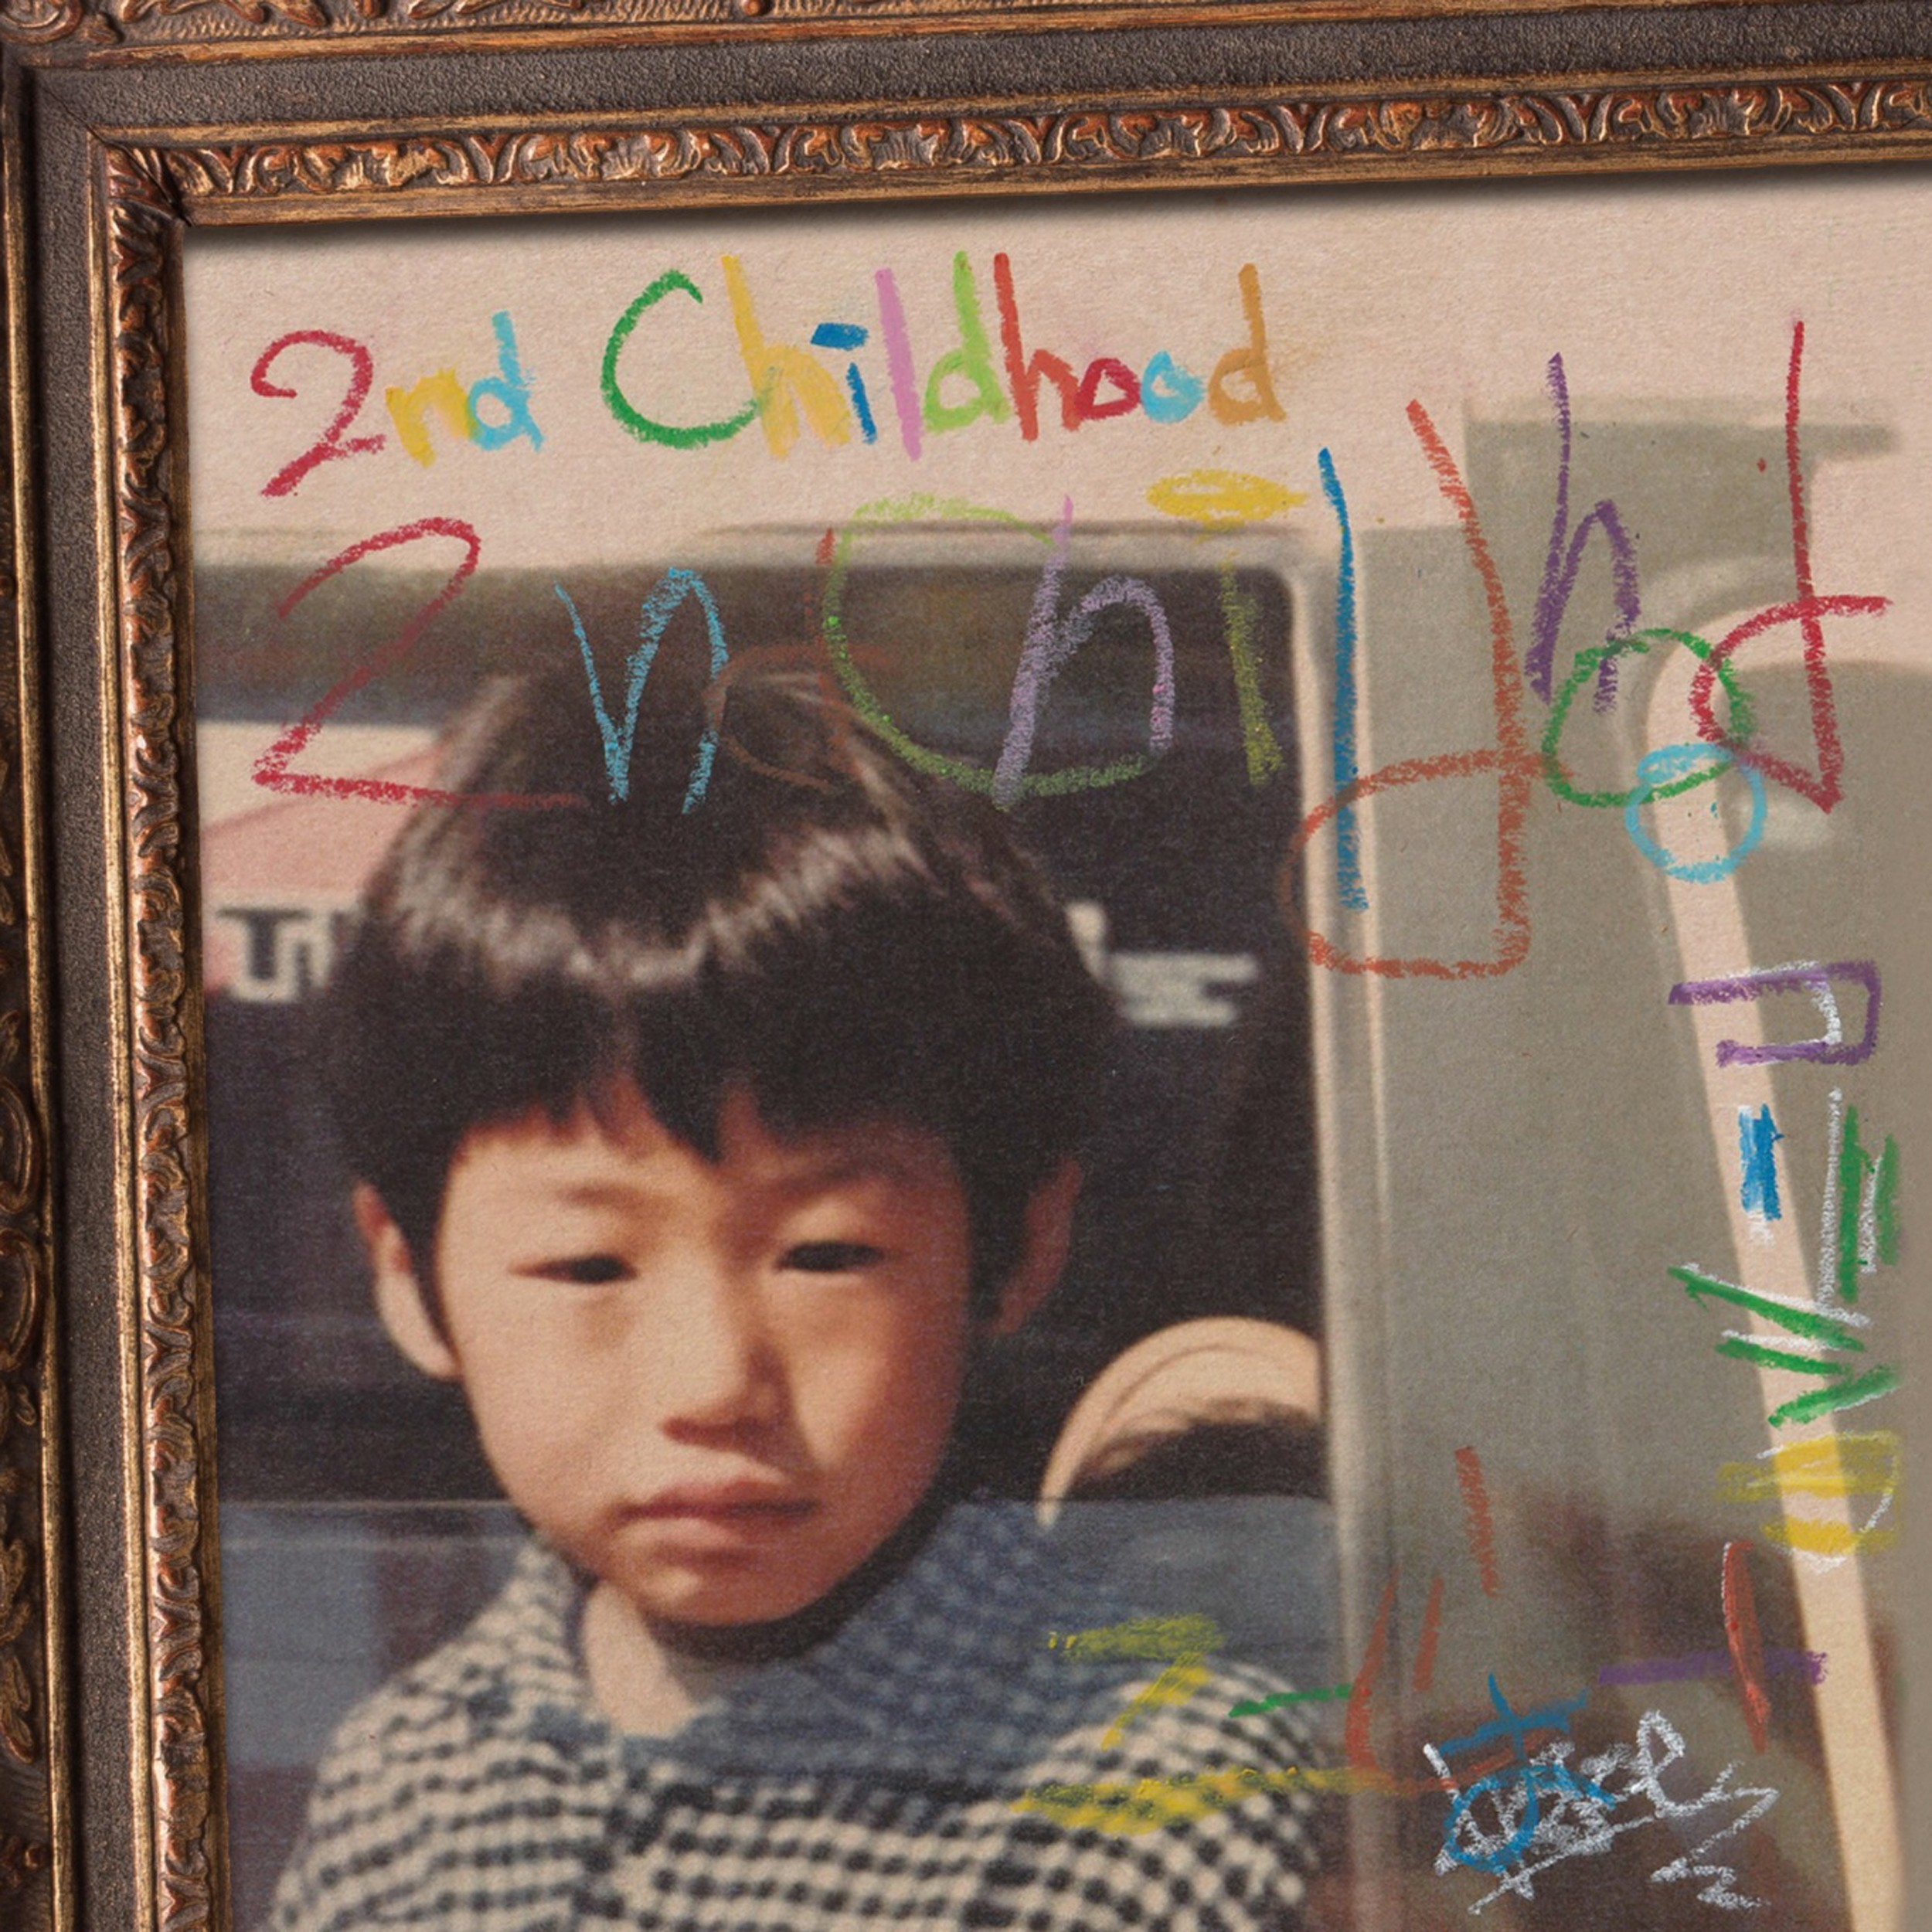 Kojoe – 2nd Childhood [FLAC / WEB] [2018.08.22]